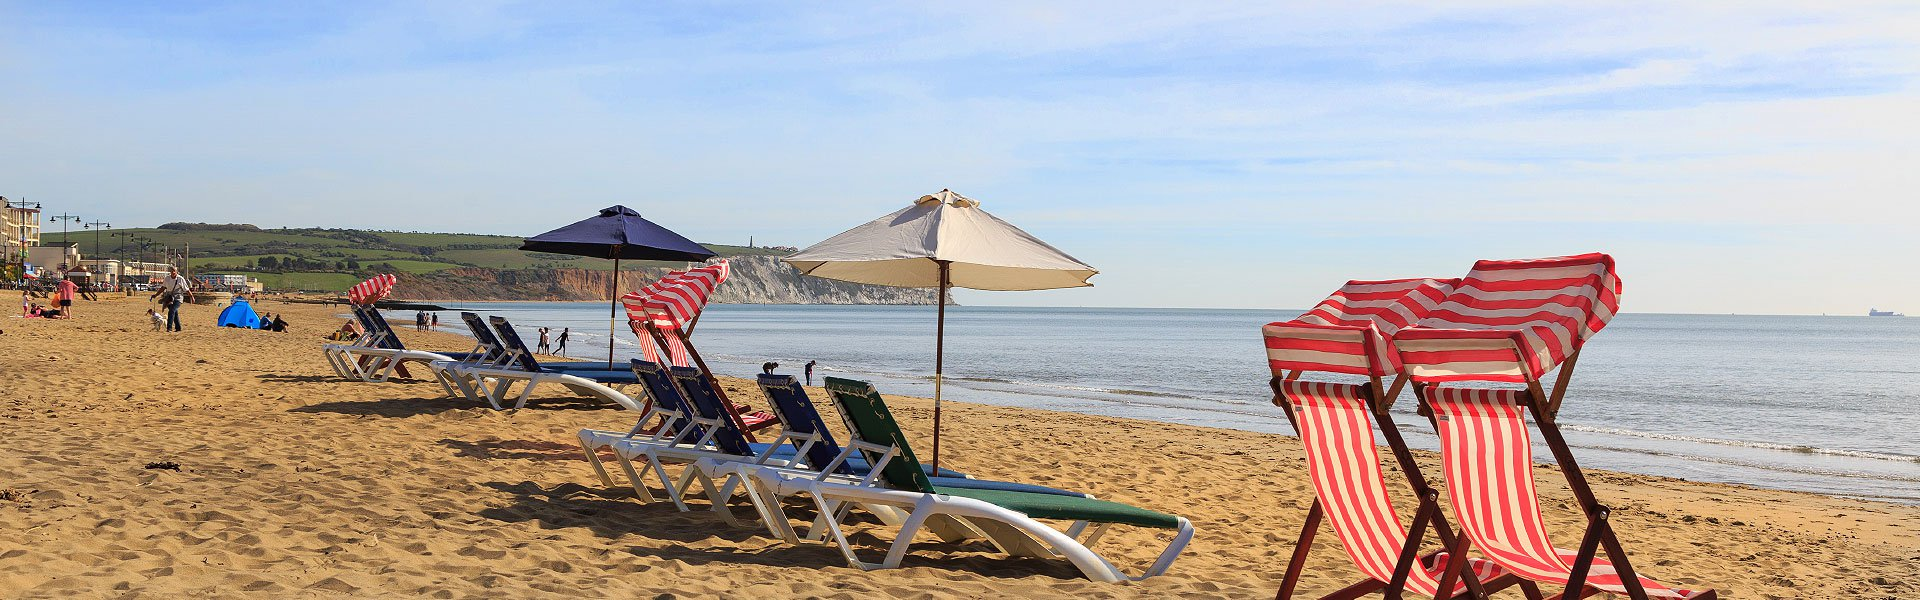 Coach Holidays to Weston super Mare